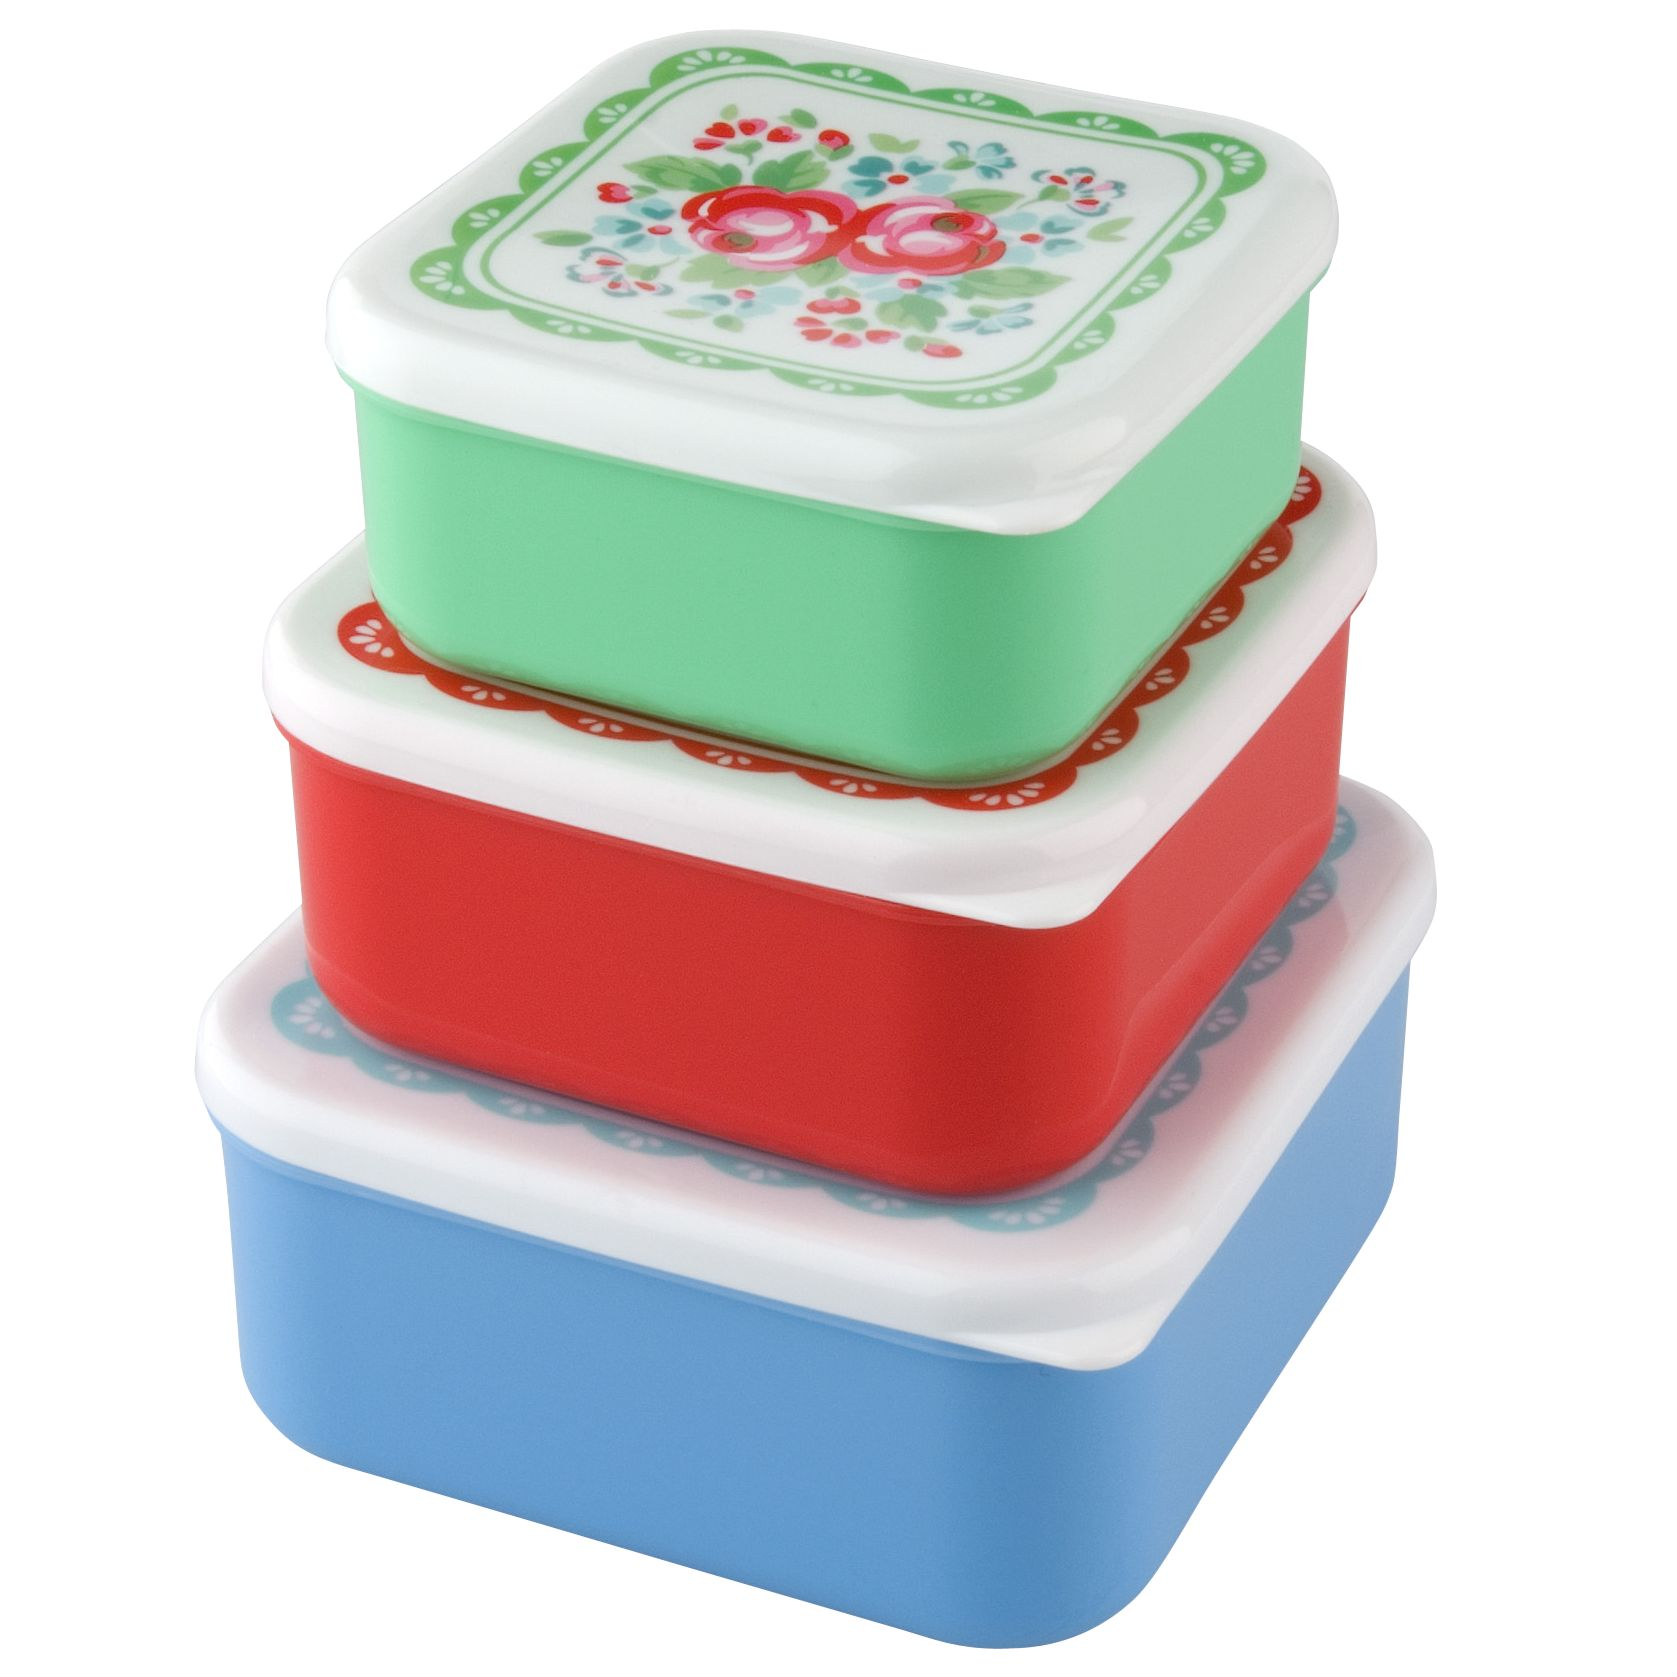 Cath Kidston Sandwich Boxes, Set of 3, Spray Flowers